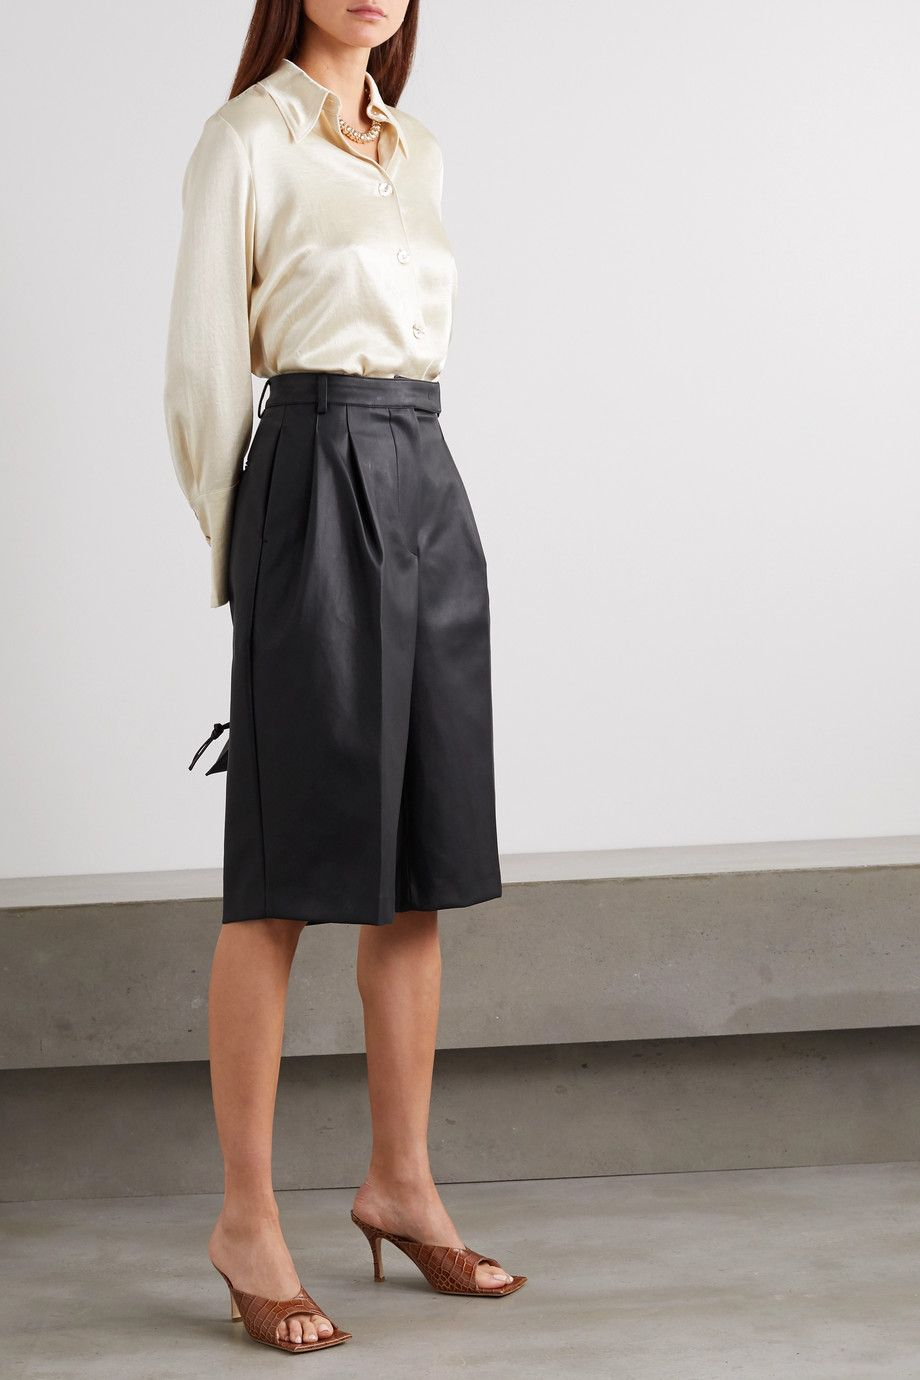 frankie-shop-pernille-pleated-faux-leather-shorts